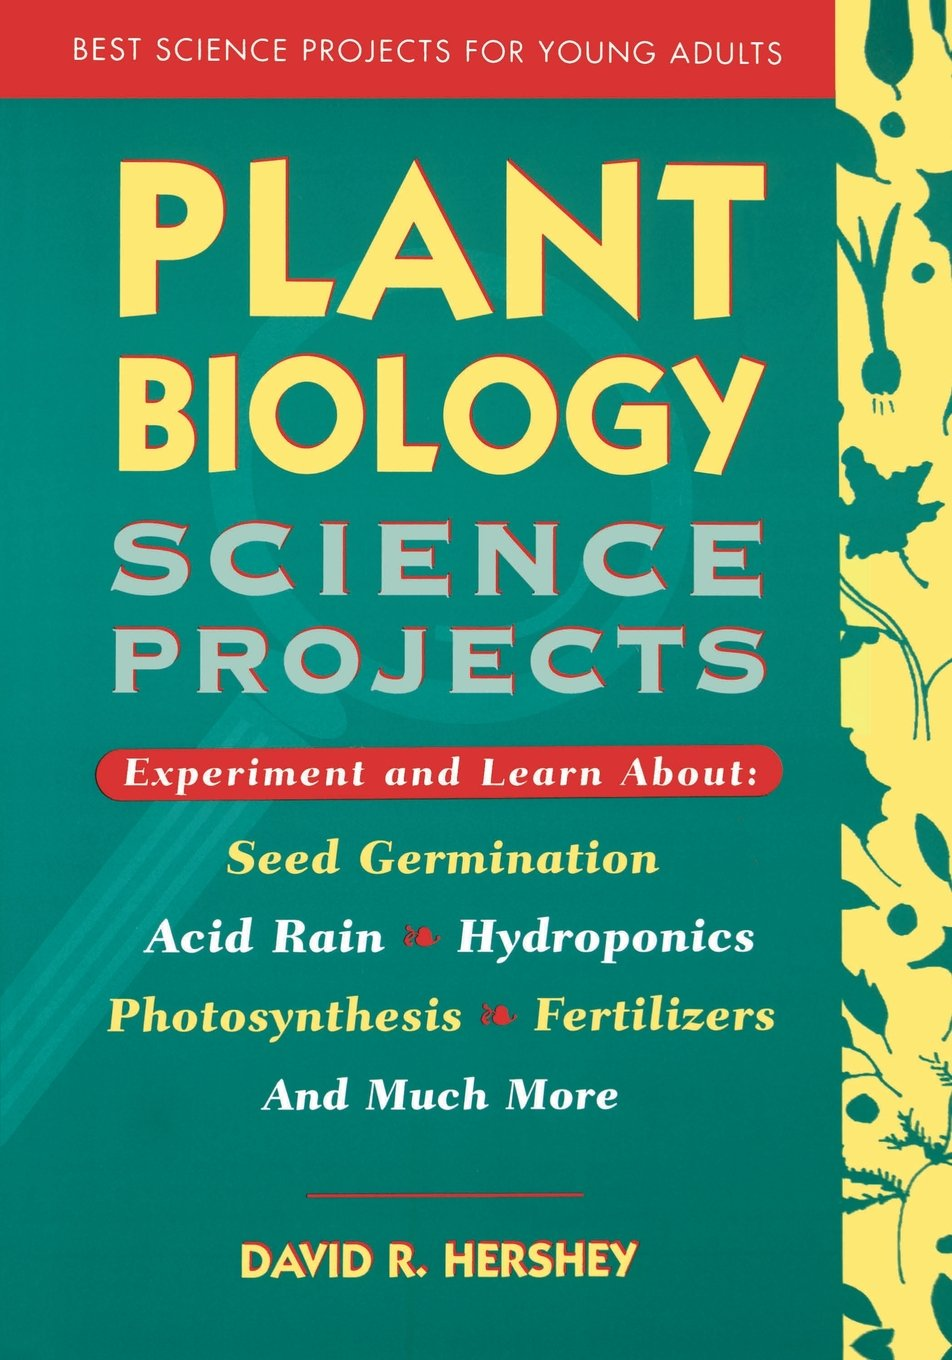 Plant Biology Science Projects